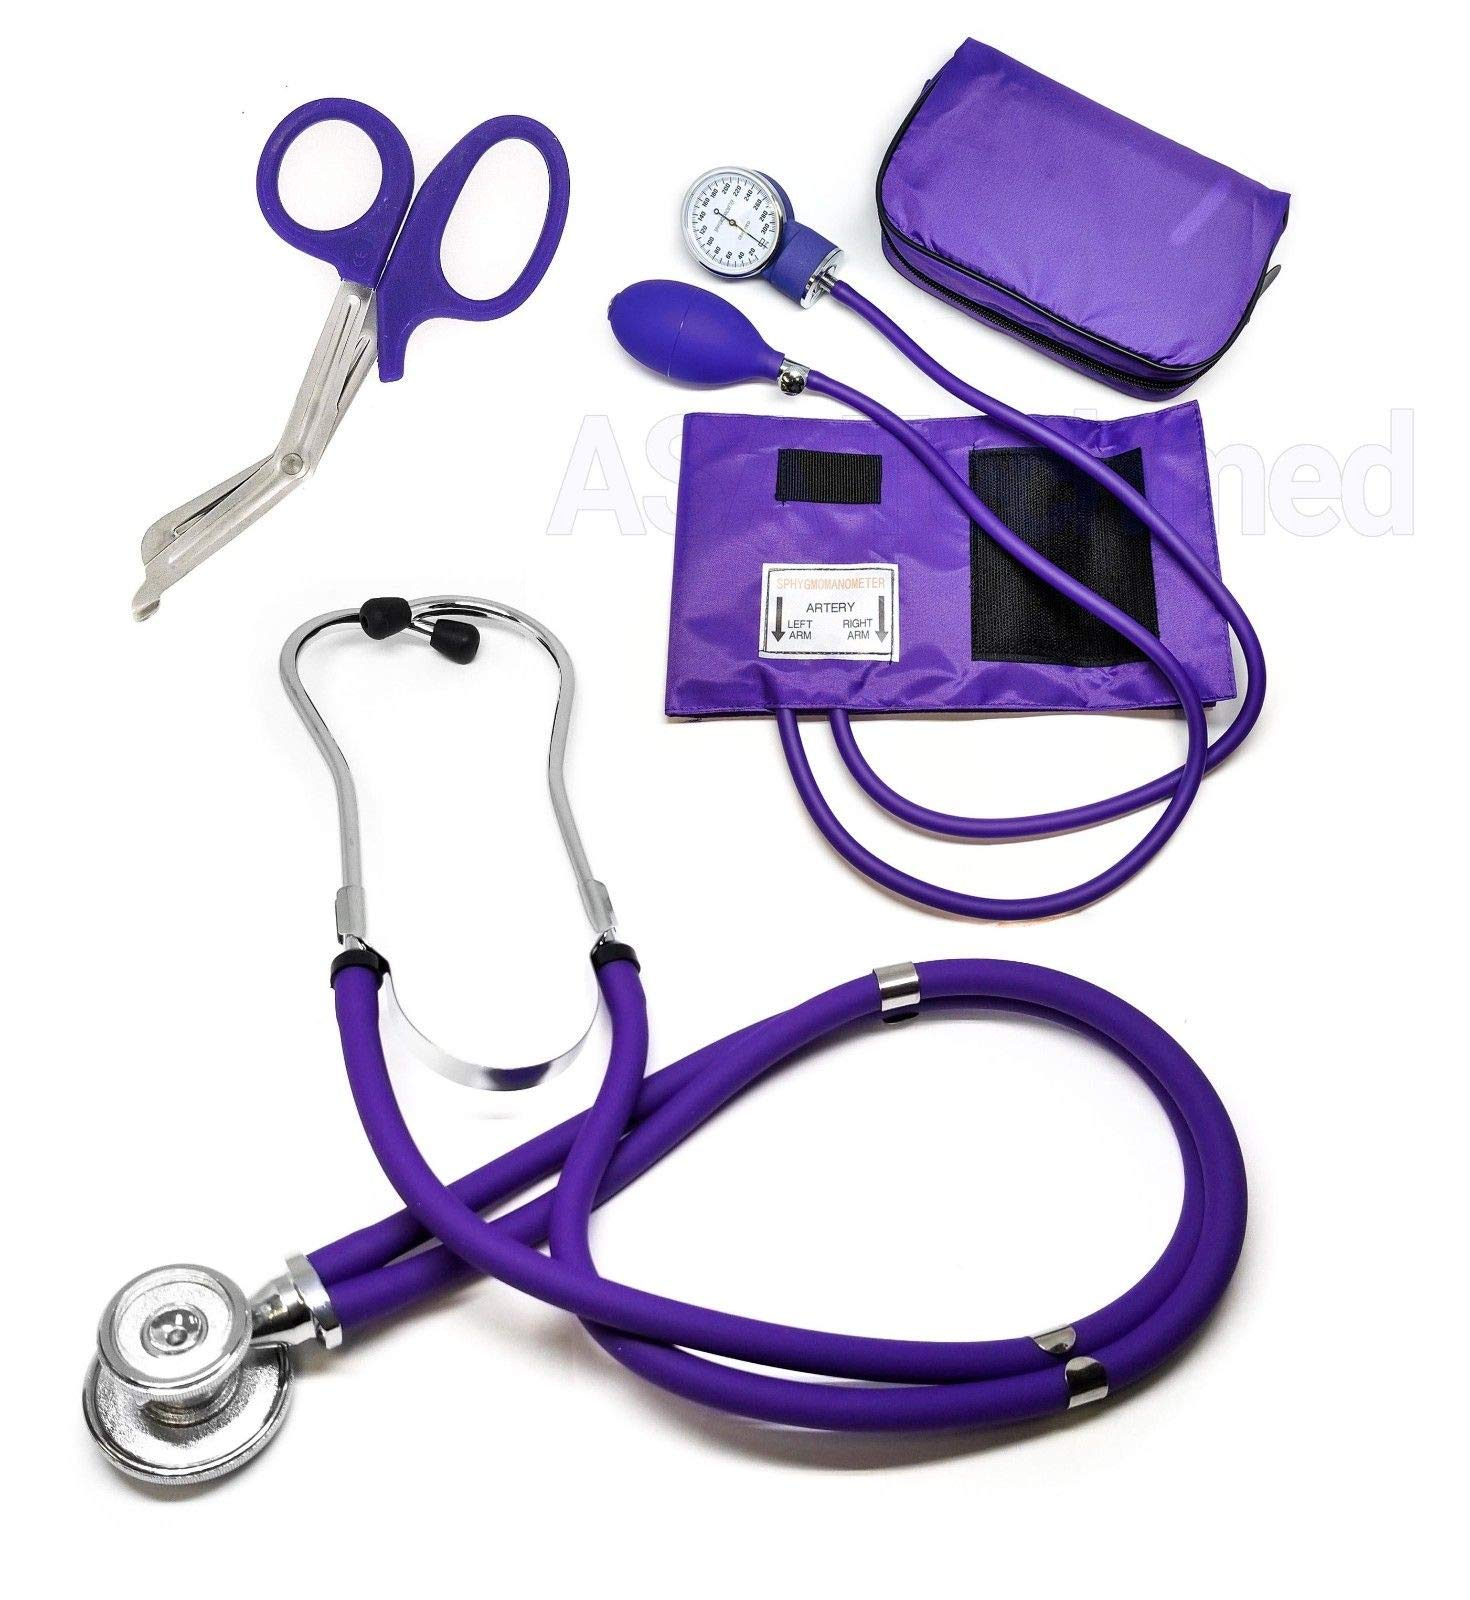 ASATechmed Nurse Starter Kit Stethoscope Blood Pressure Monitor and More - 18 Pieces Total (Purple) by ASATechmed (Image #3)